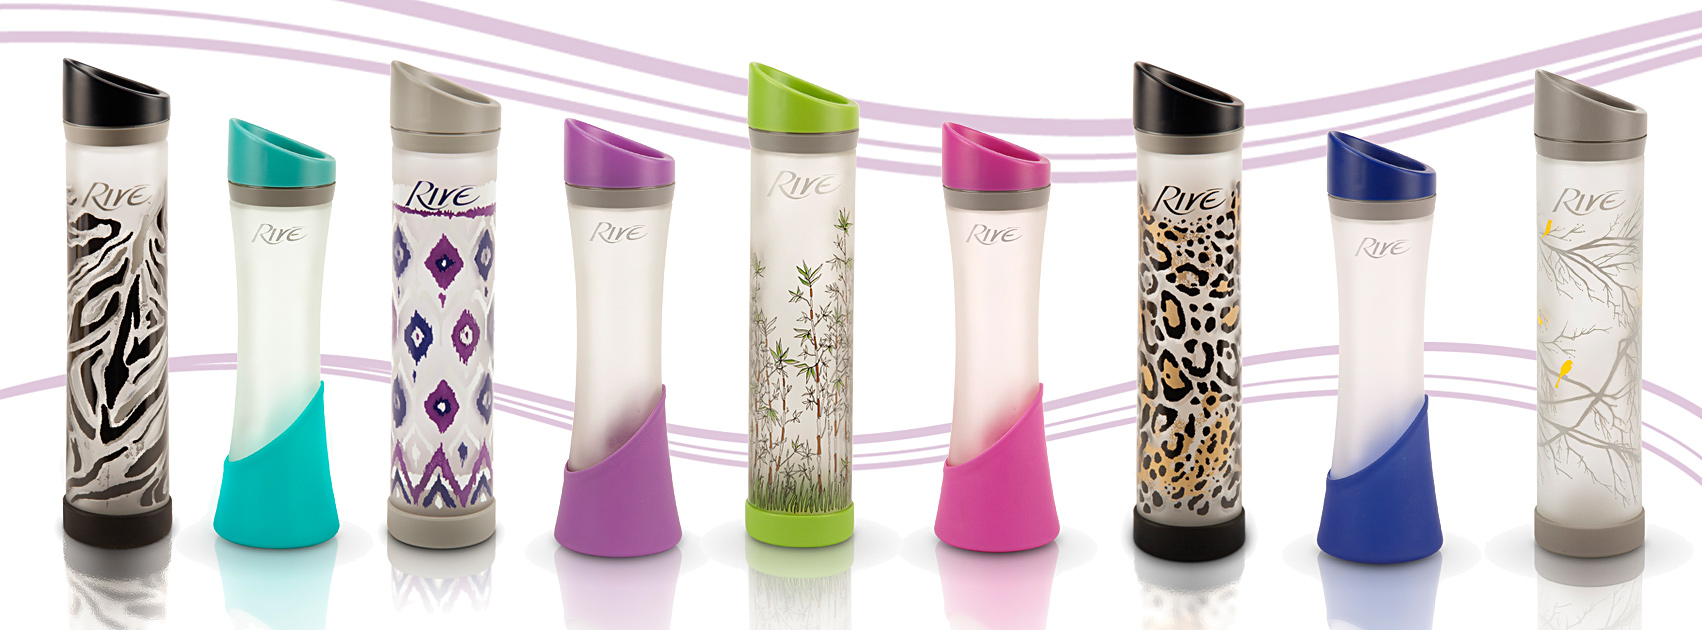 Rive Usa Family Of Water Bottle The Elan Savoy Designer Series And The Lynx Fashion Lifestyle